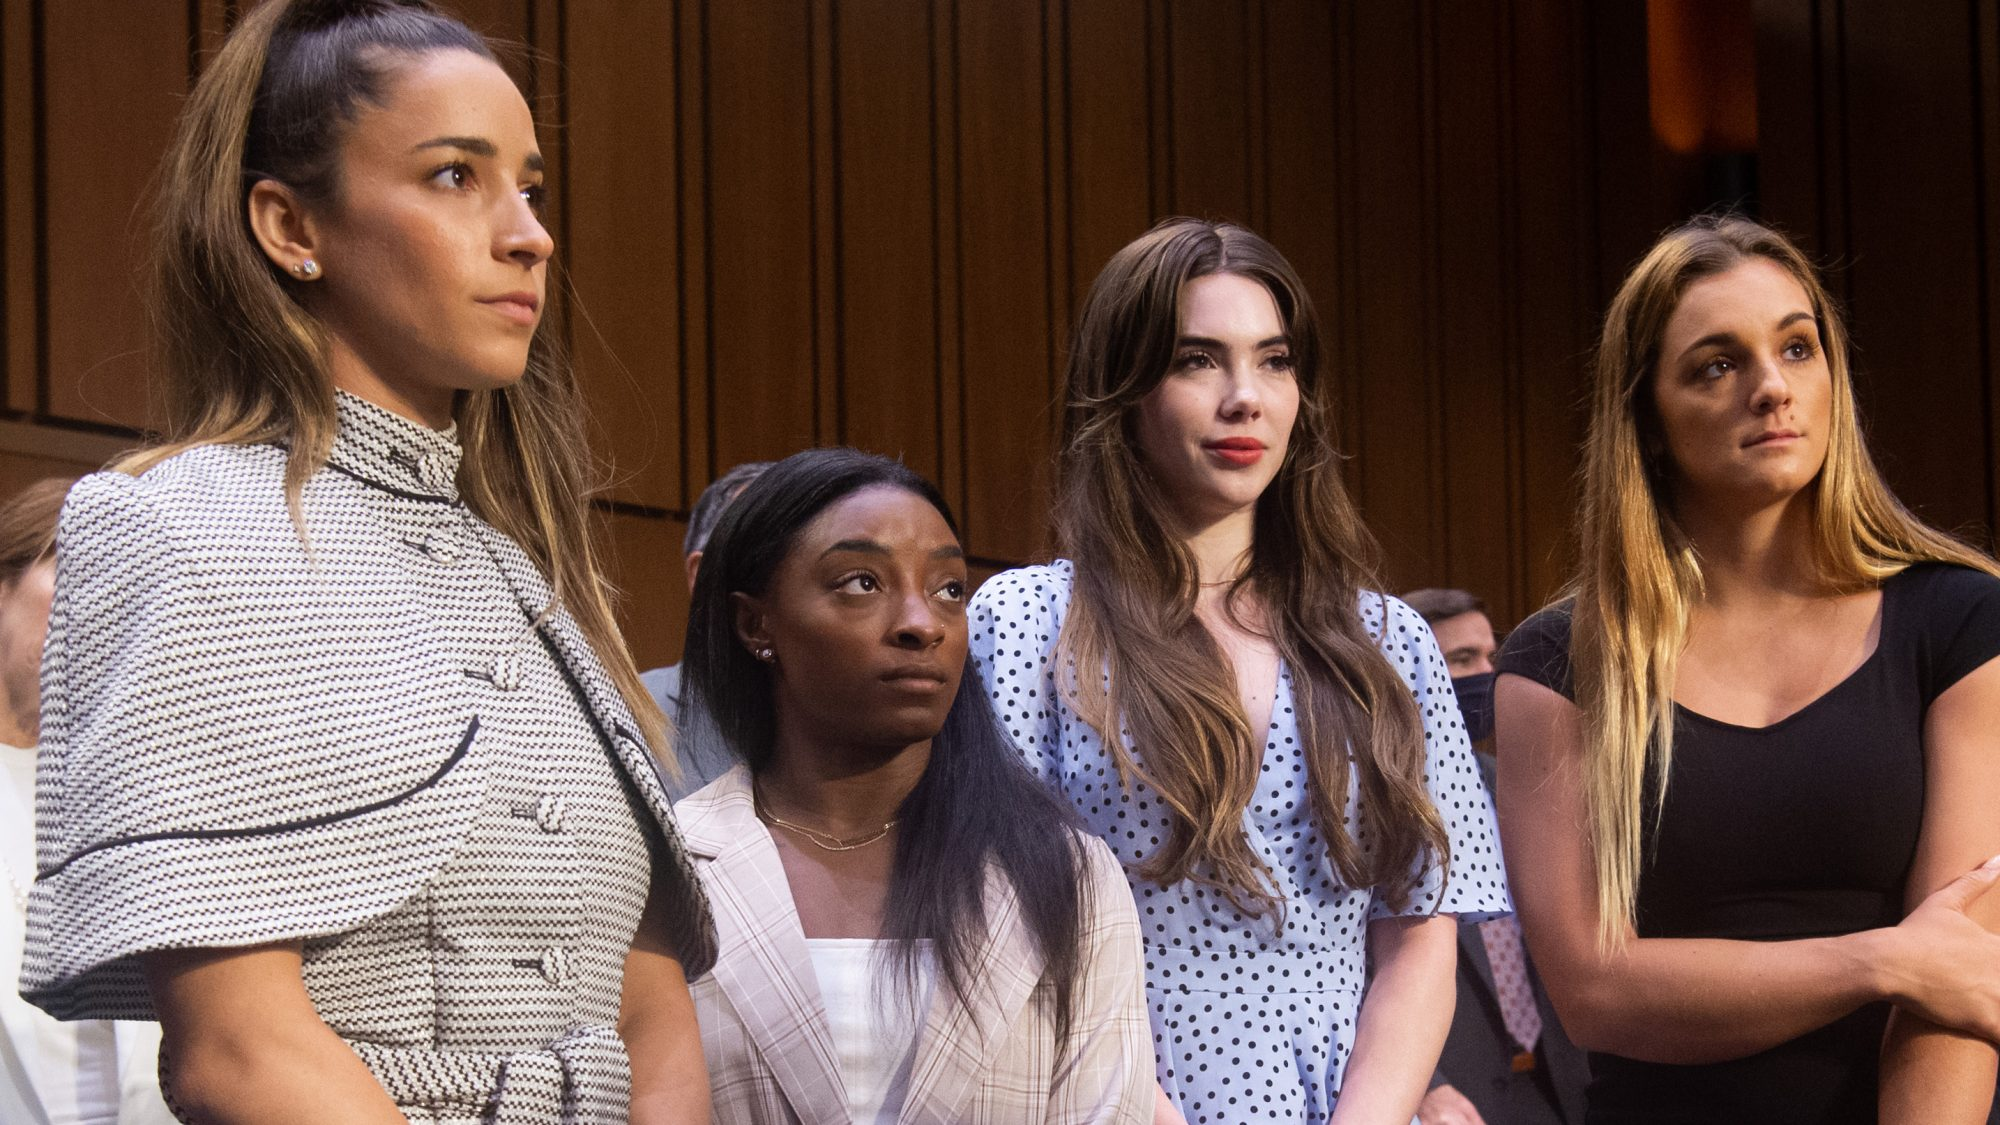 Olympic gymnasts at Larry Nassar trial